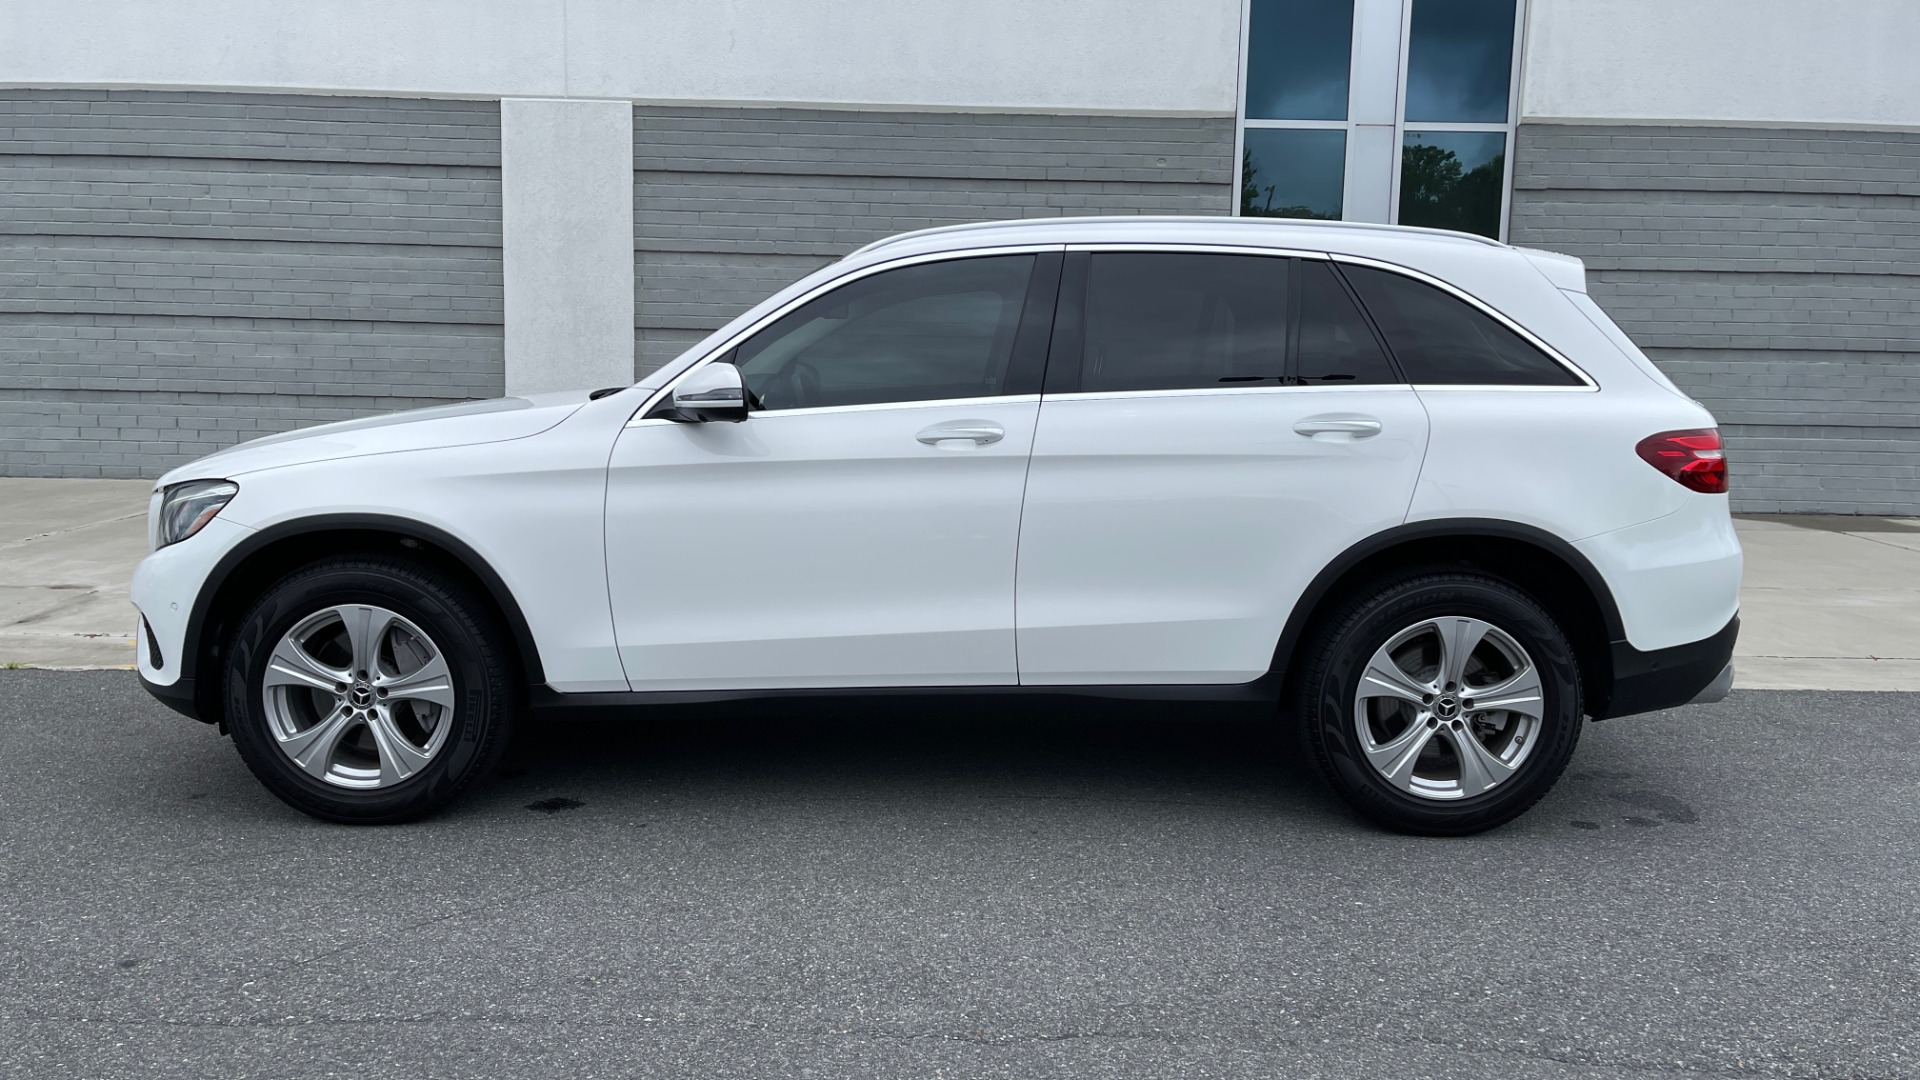 Used 2018 Mercedes-Benz GLC 300 PREMIUM / PANO-ROOF / HTD STS / PARK ASST / REARVIEW for sale $34,613 at Formula Imports in Charlotte NC 28227 4